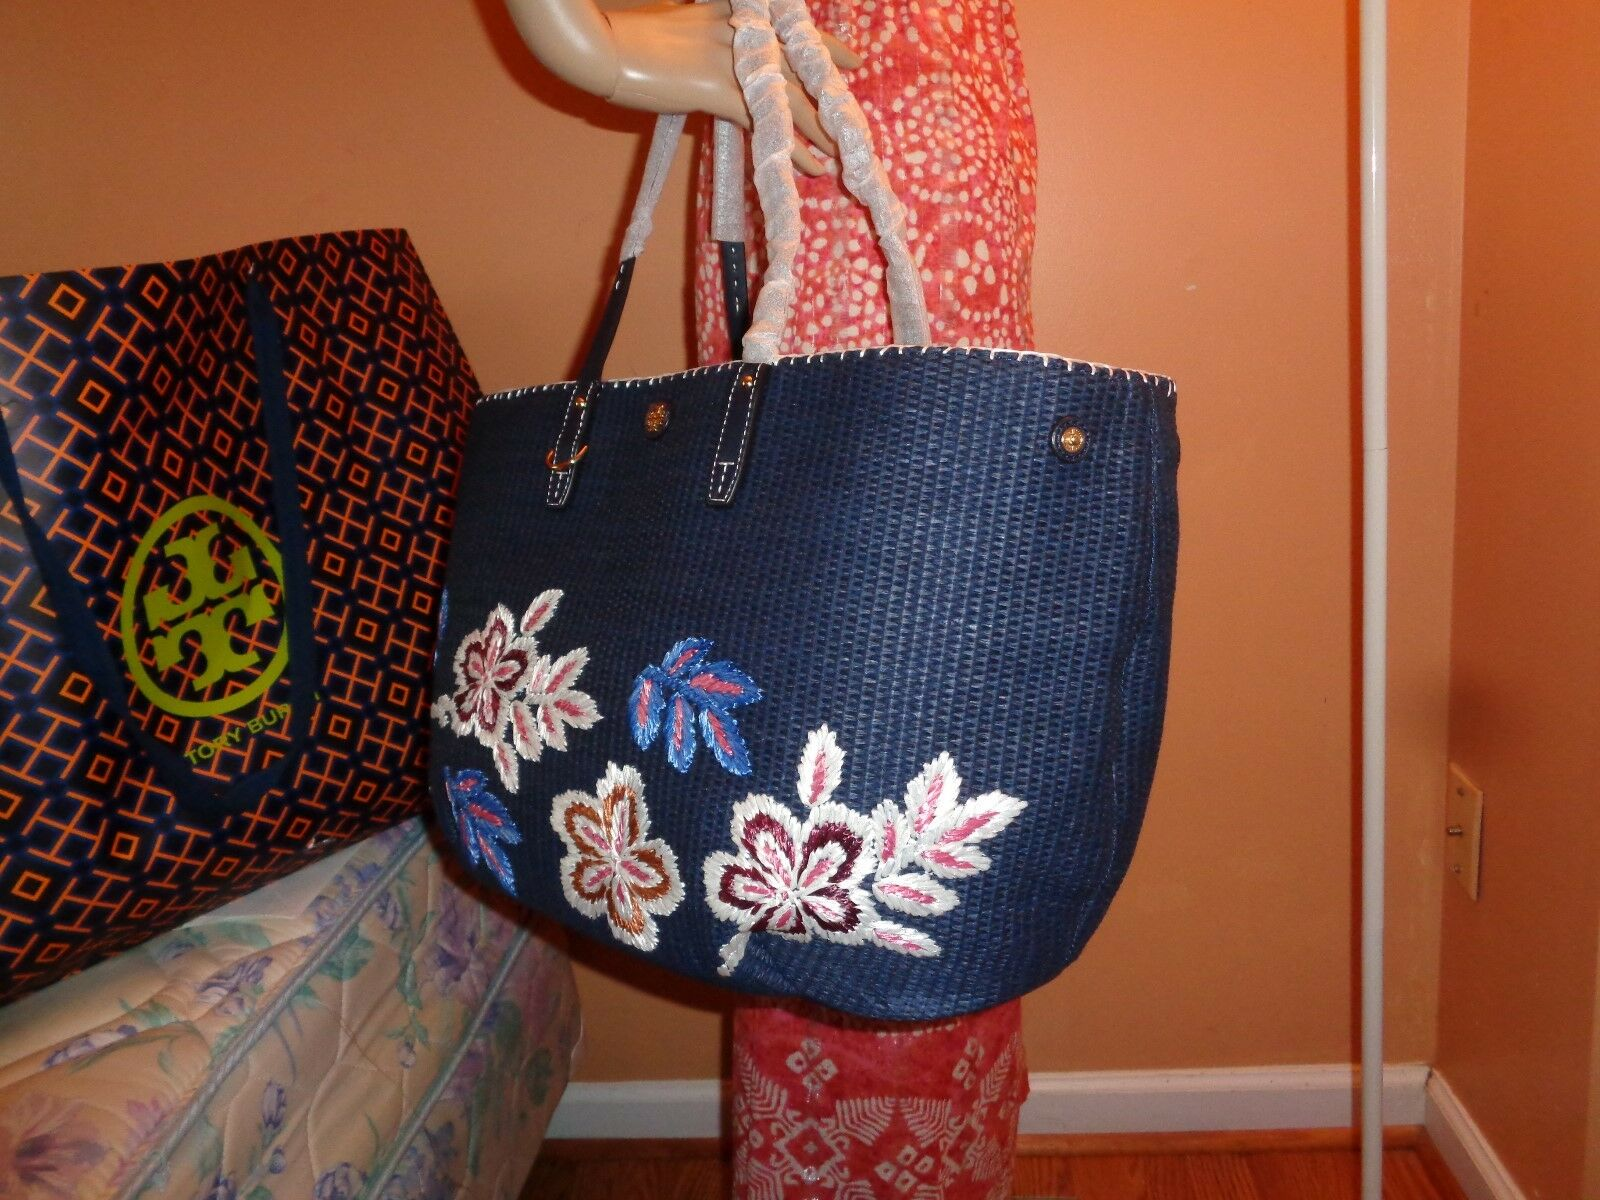 bdeaeef7fc68 Auth Tory Burch Kerrington Square Straw Navy Tote Purse Bag for sale online